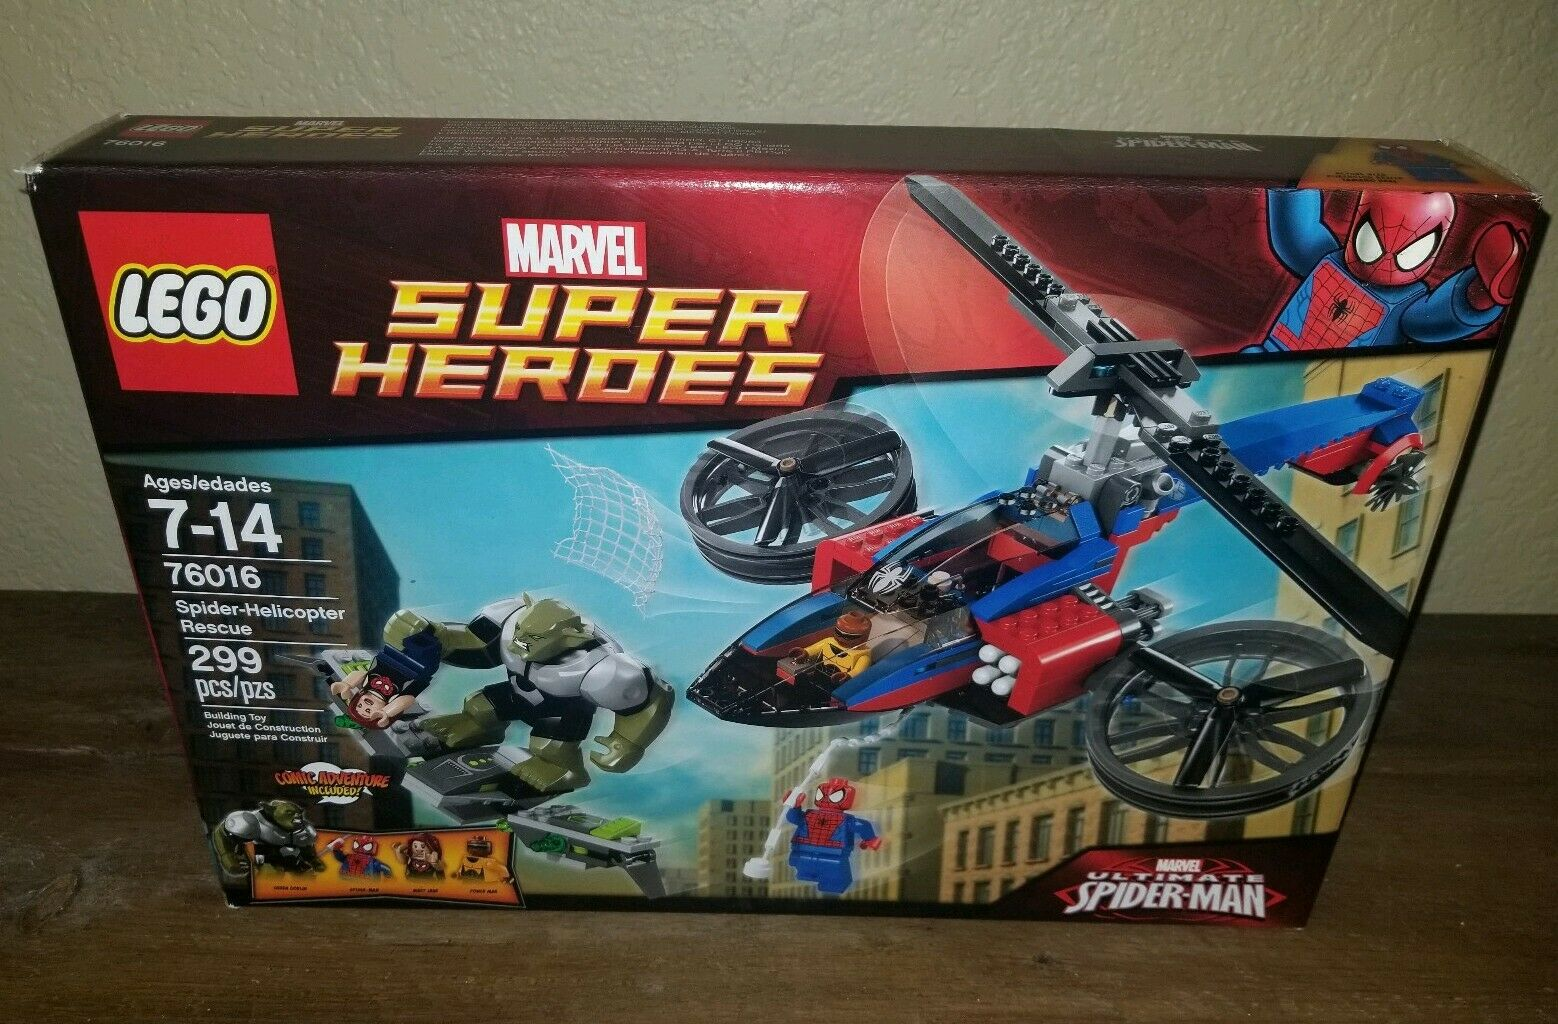 2014 LEGO Marvel Spider-Helicopter Rescue - New New New Sealed 8e7768